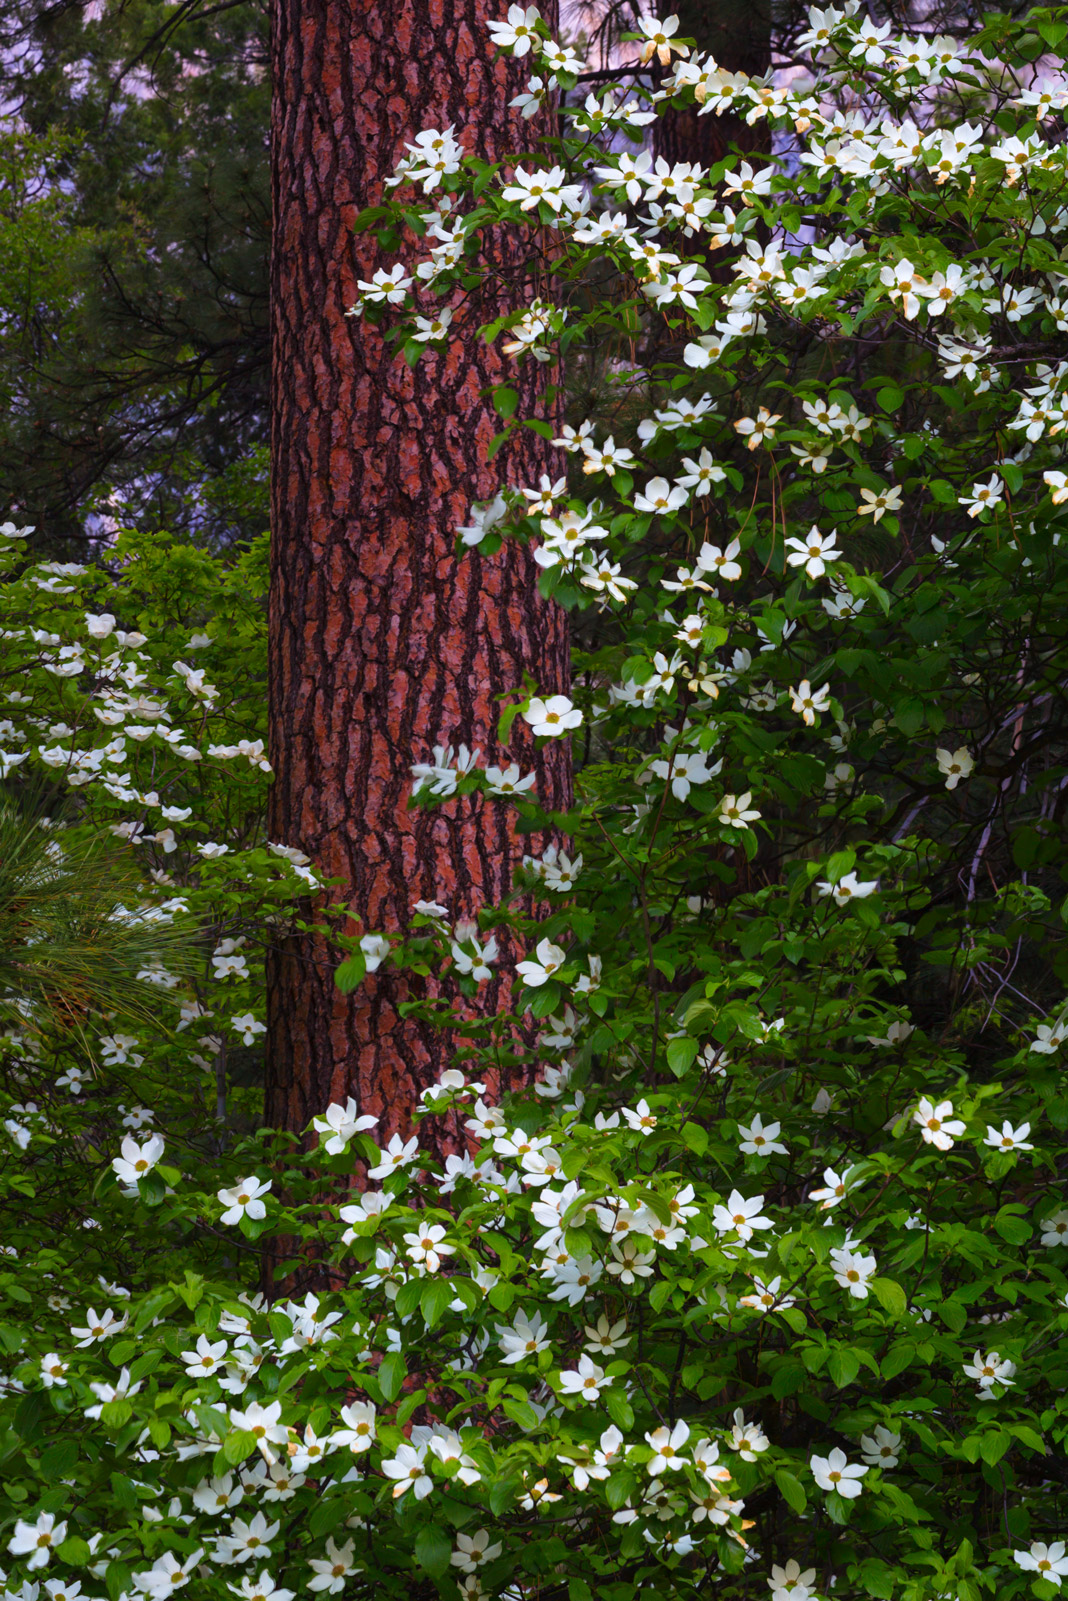 A Limited Edition photograph of Yosemite National Park showing the signs of Spring with Dogwood flowers blooming around a pine...